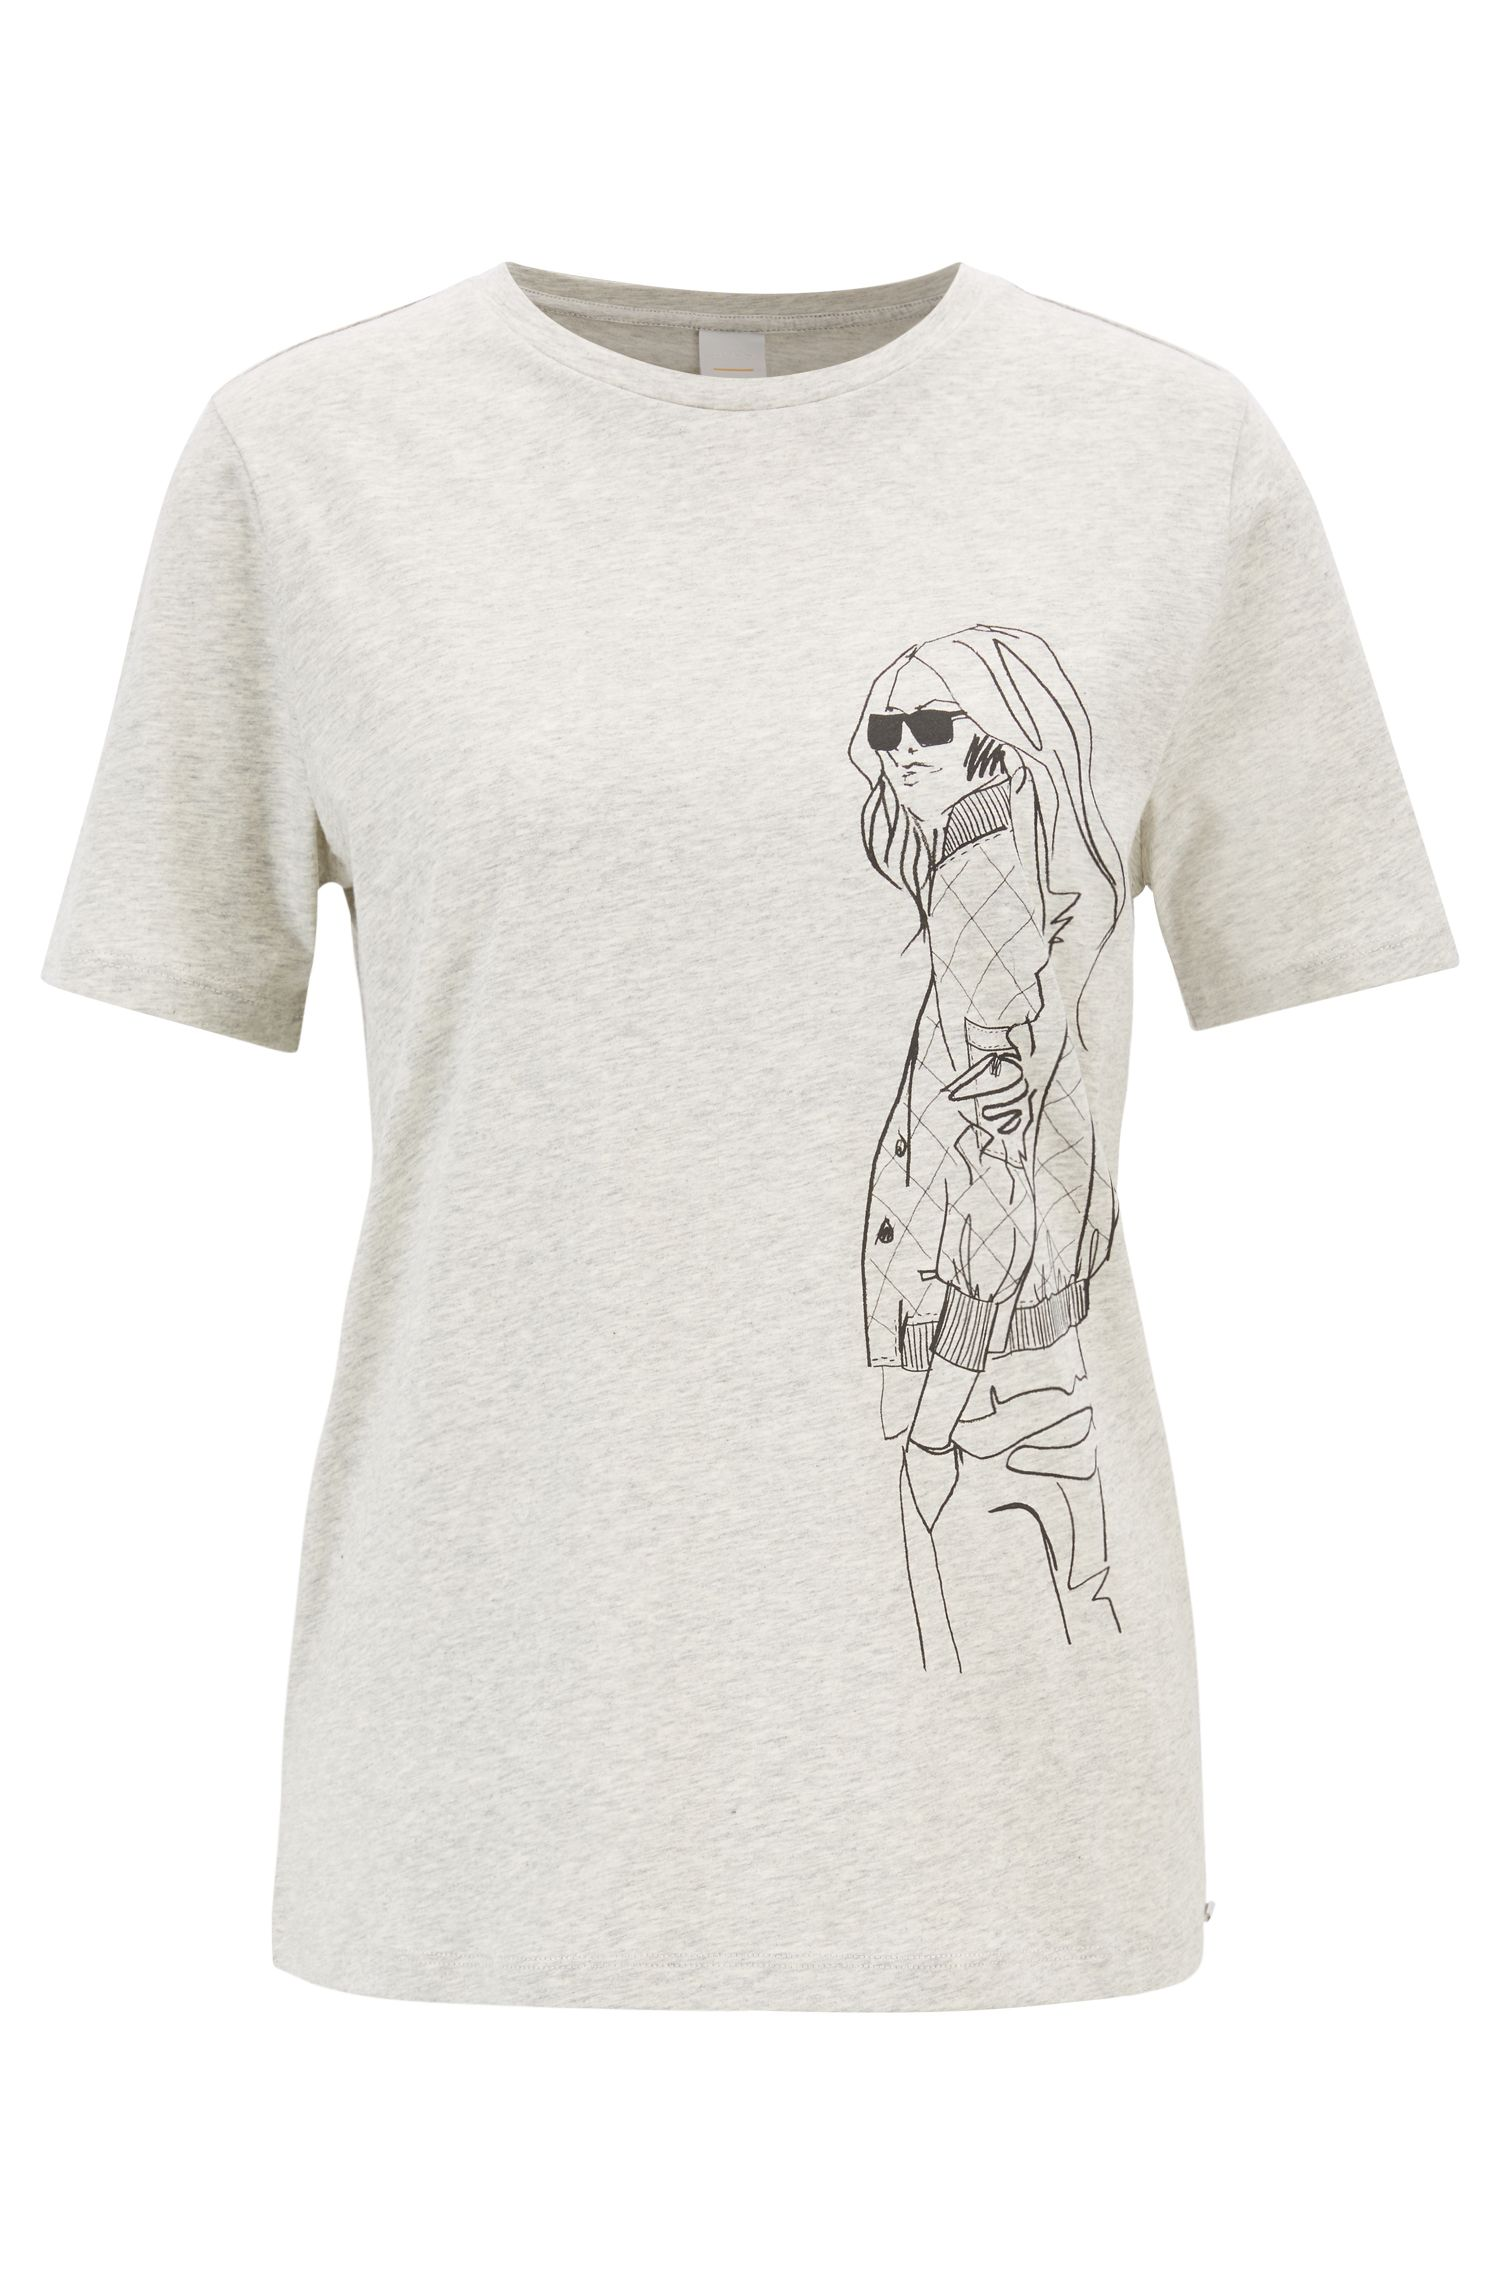 Boxy-fit T-shirt in cotton jersey with hand-drawn artwork, Silver